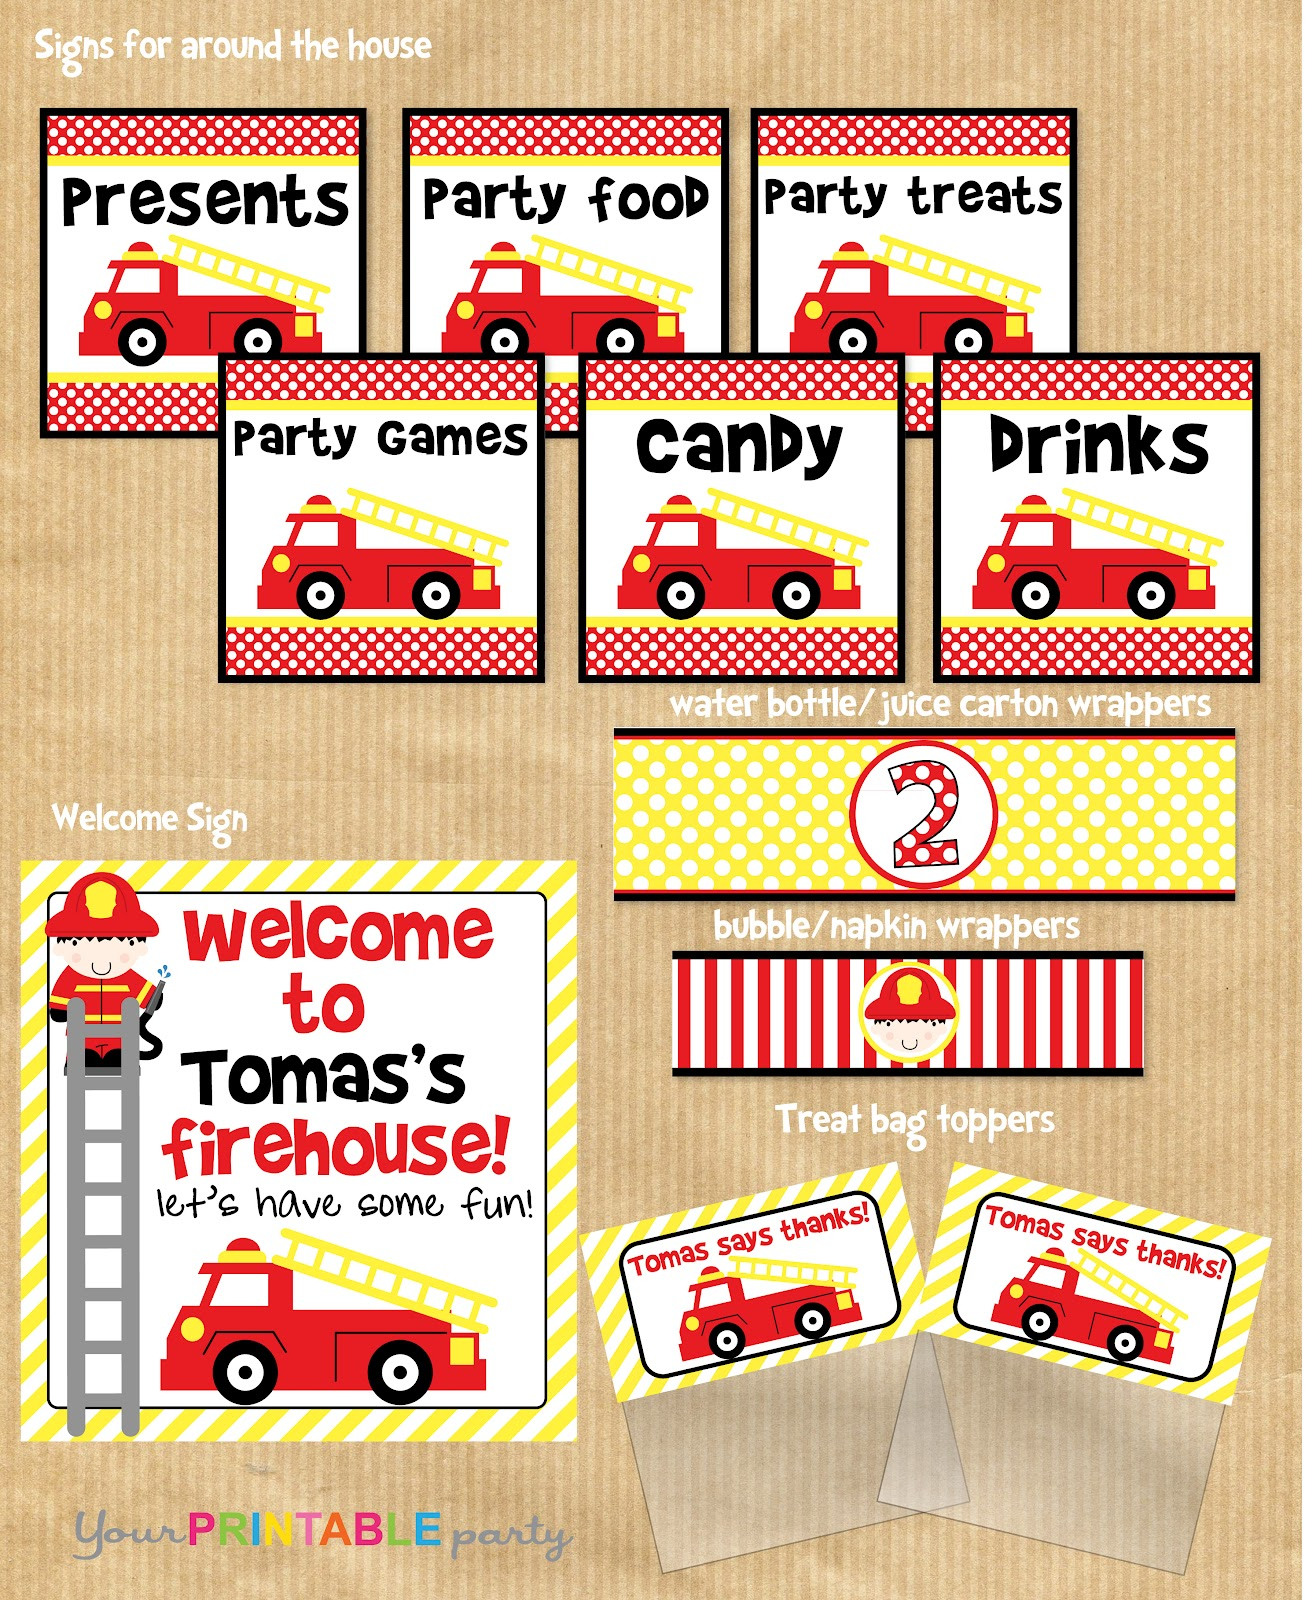 Your Printable Party Super Cute Firetruck Printable Party